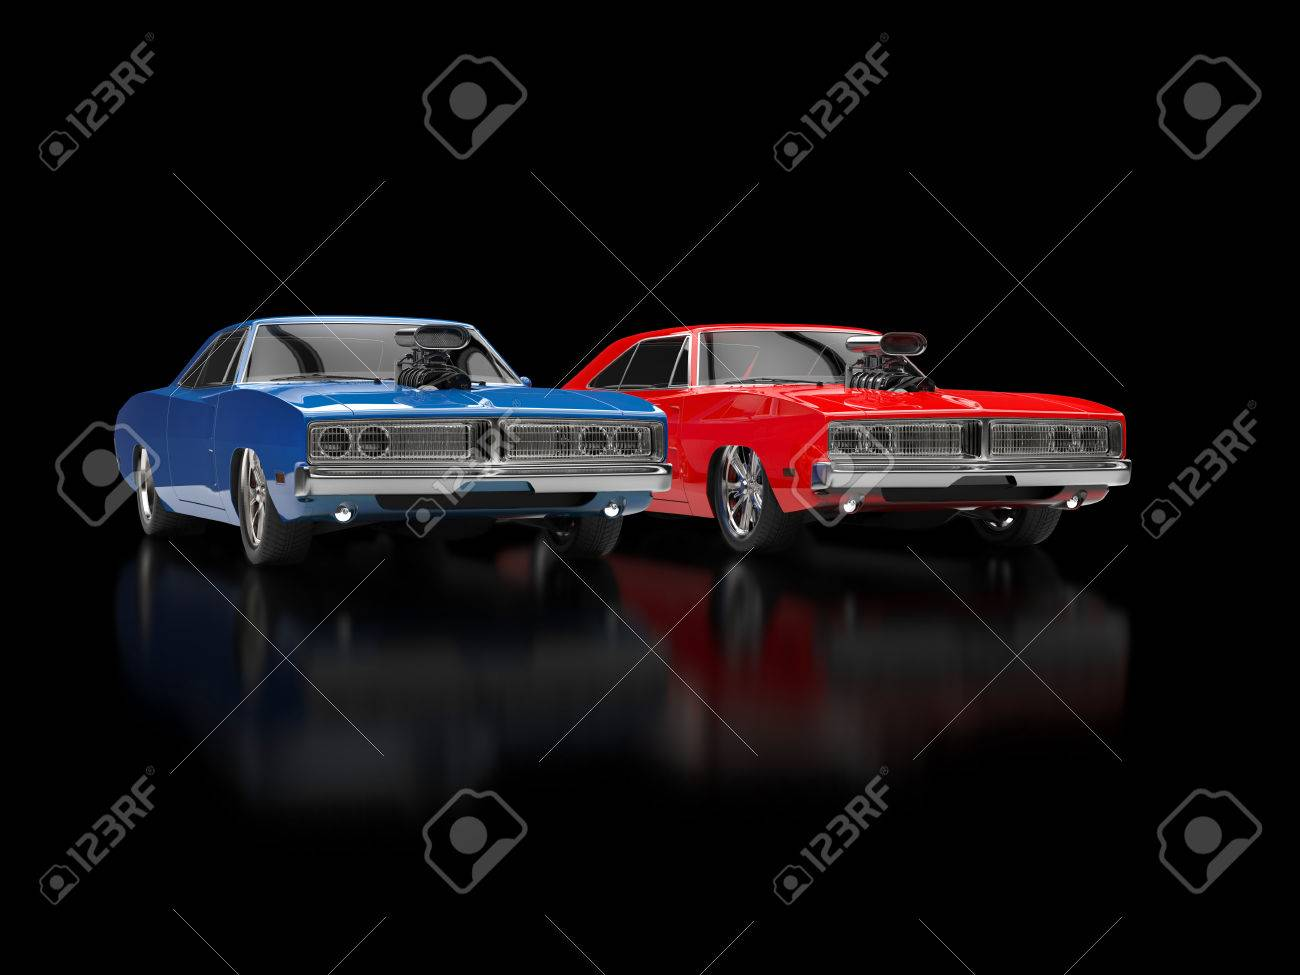 Blue And Red Muscle Cars On Black Reflective Background Stock